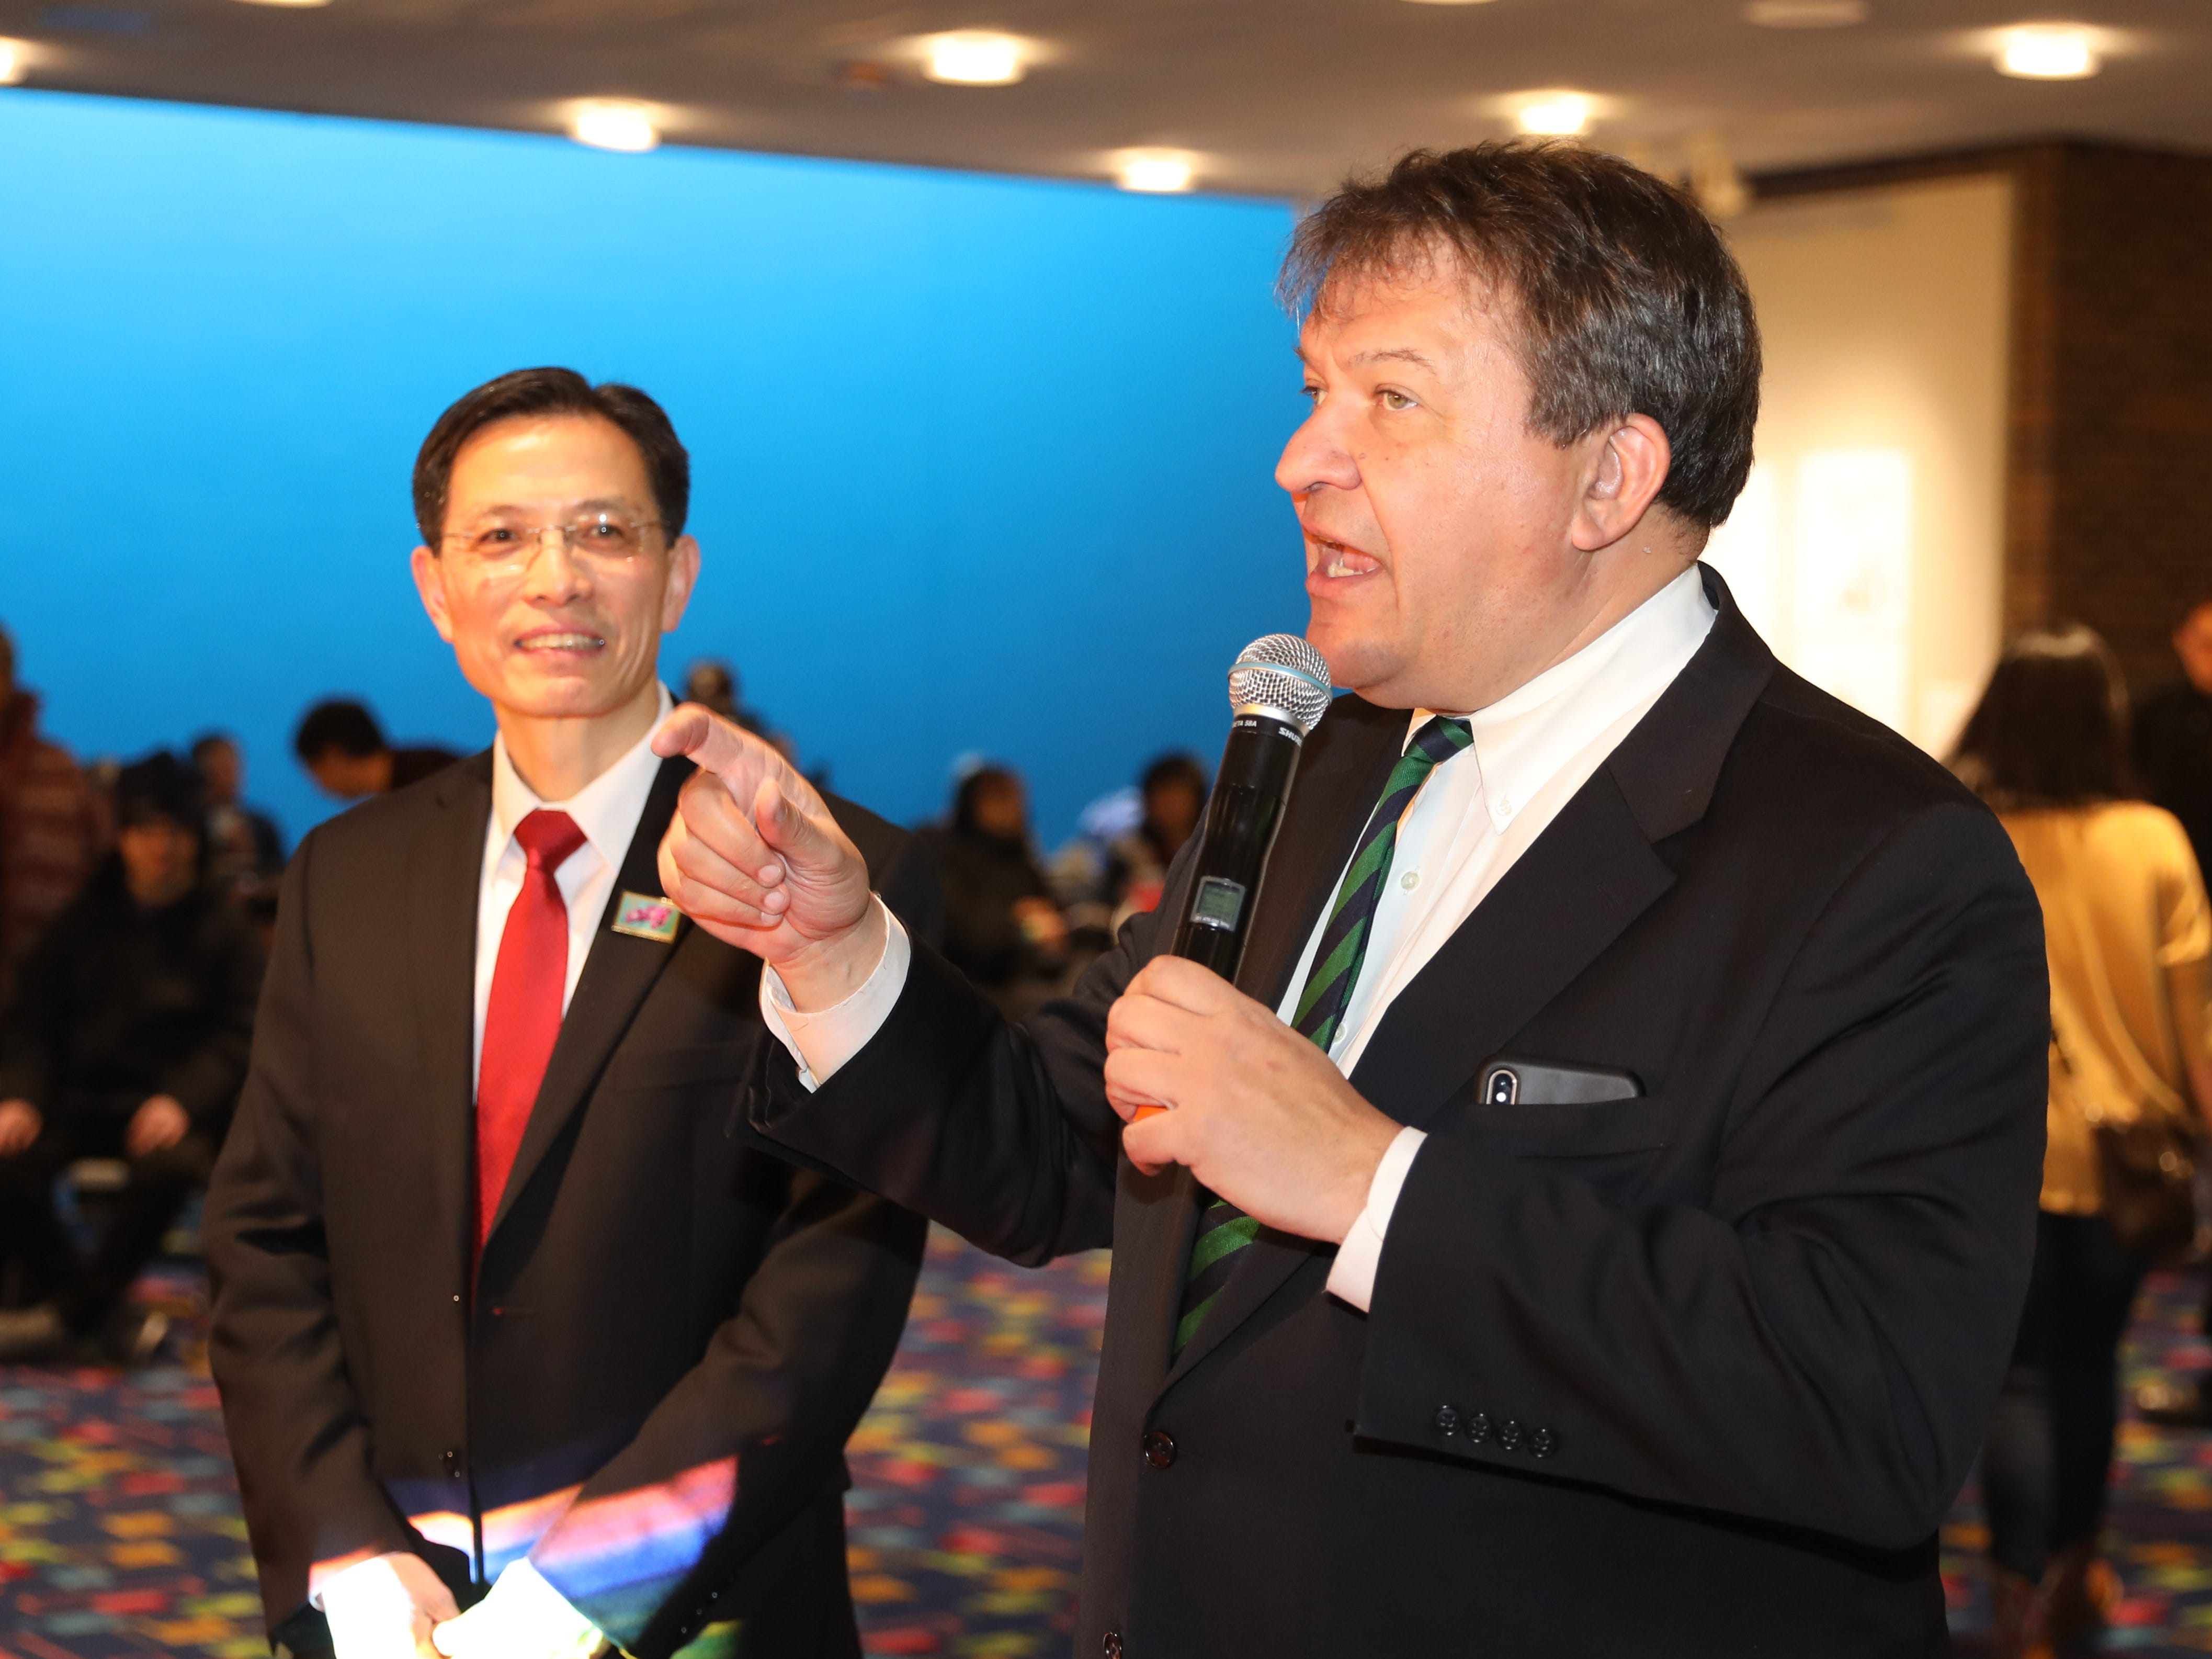 Kevin Ding, the president of WACA (Westchester Association of Chinese Americans), listens as Westchester County Executive George Latimer greets the guests, during the 30th Chinese New Year Festival, the Year of the Pig, sponsored by WACA, at The Performing Arts Center at Purchase College SUNY, Feb. 9, 2019.